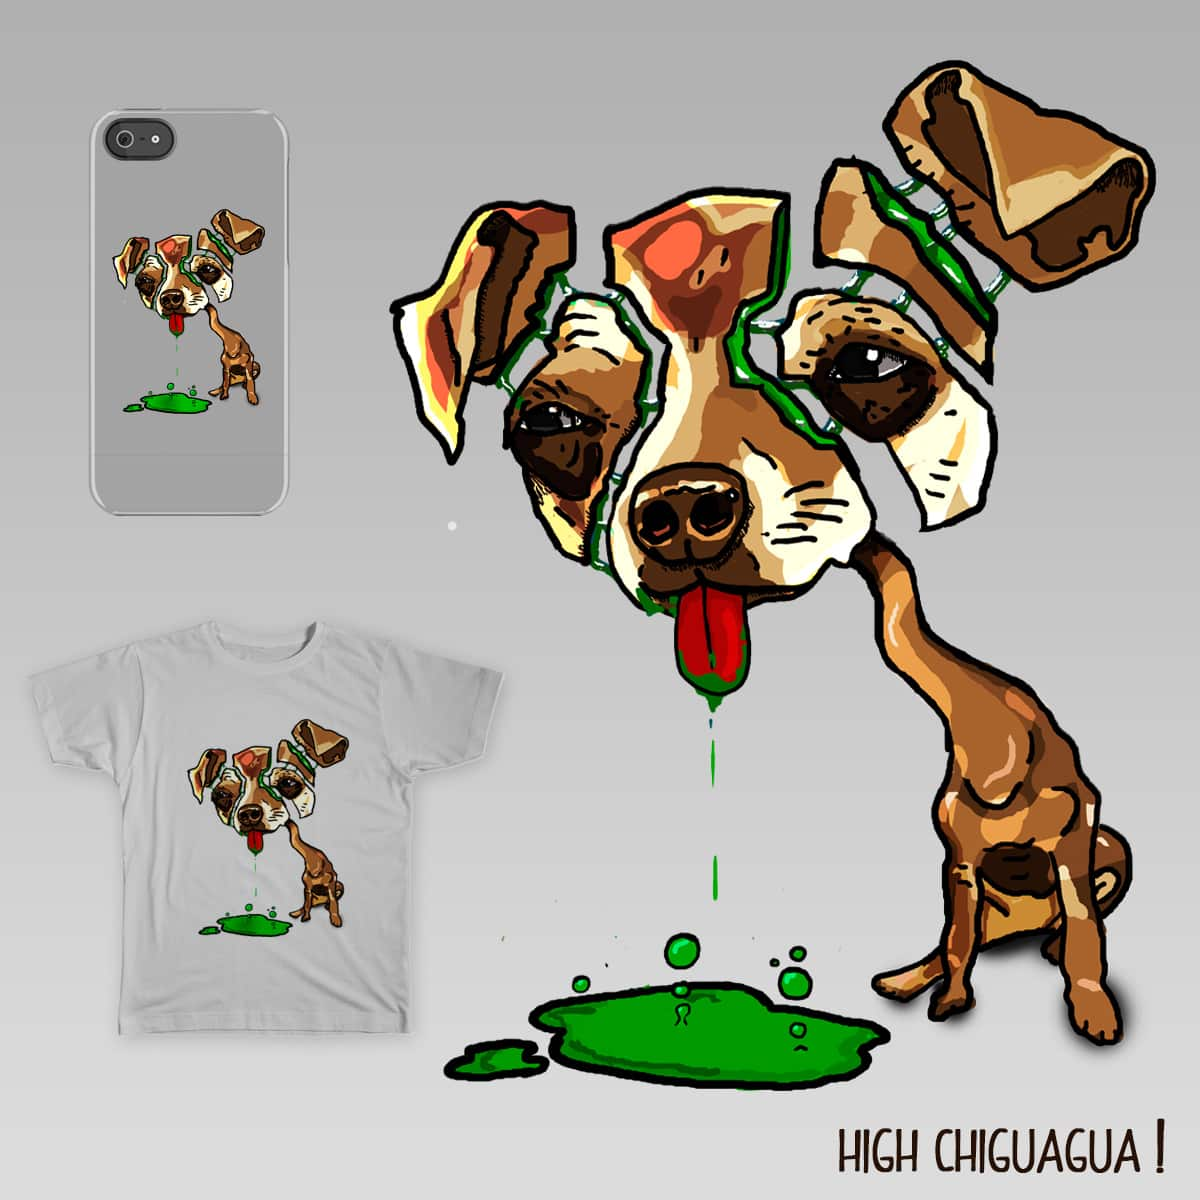 High Chiguagua by Larage on Threadless